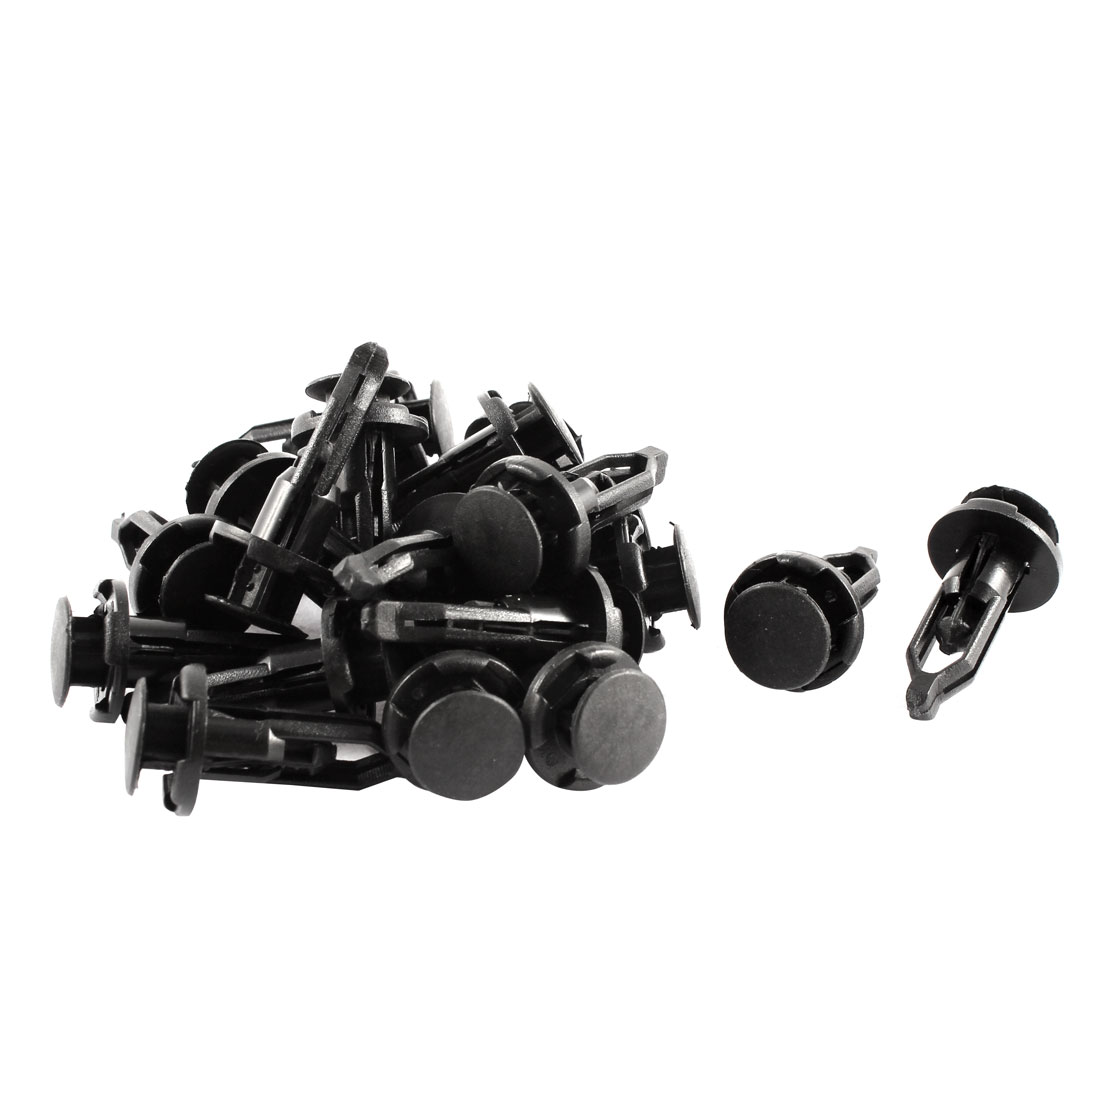 20 Pcs Black Plastic Rivets Fastener Clip 9mm x 17.5mm x 28mm for Car Bumper